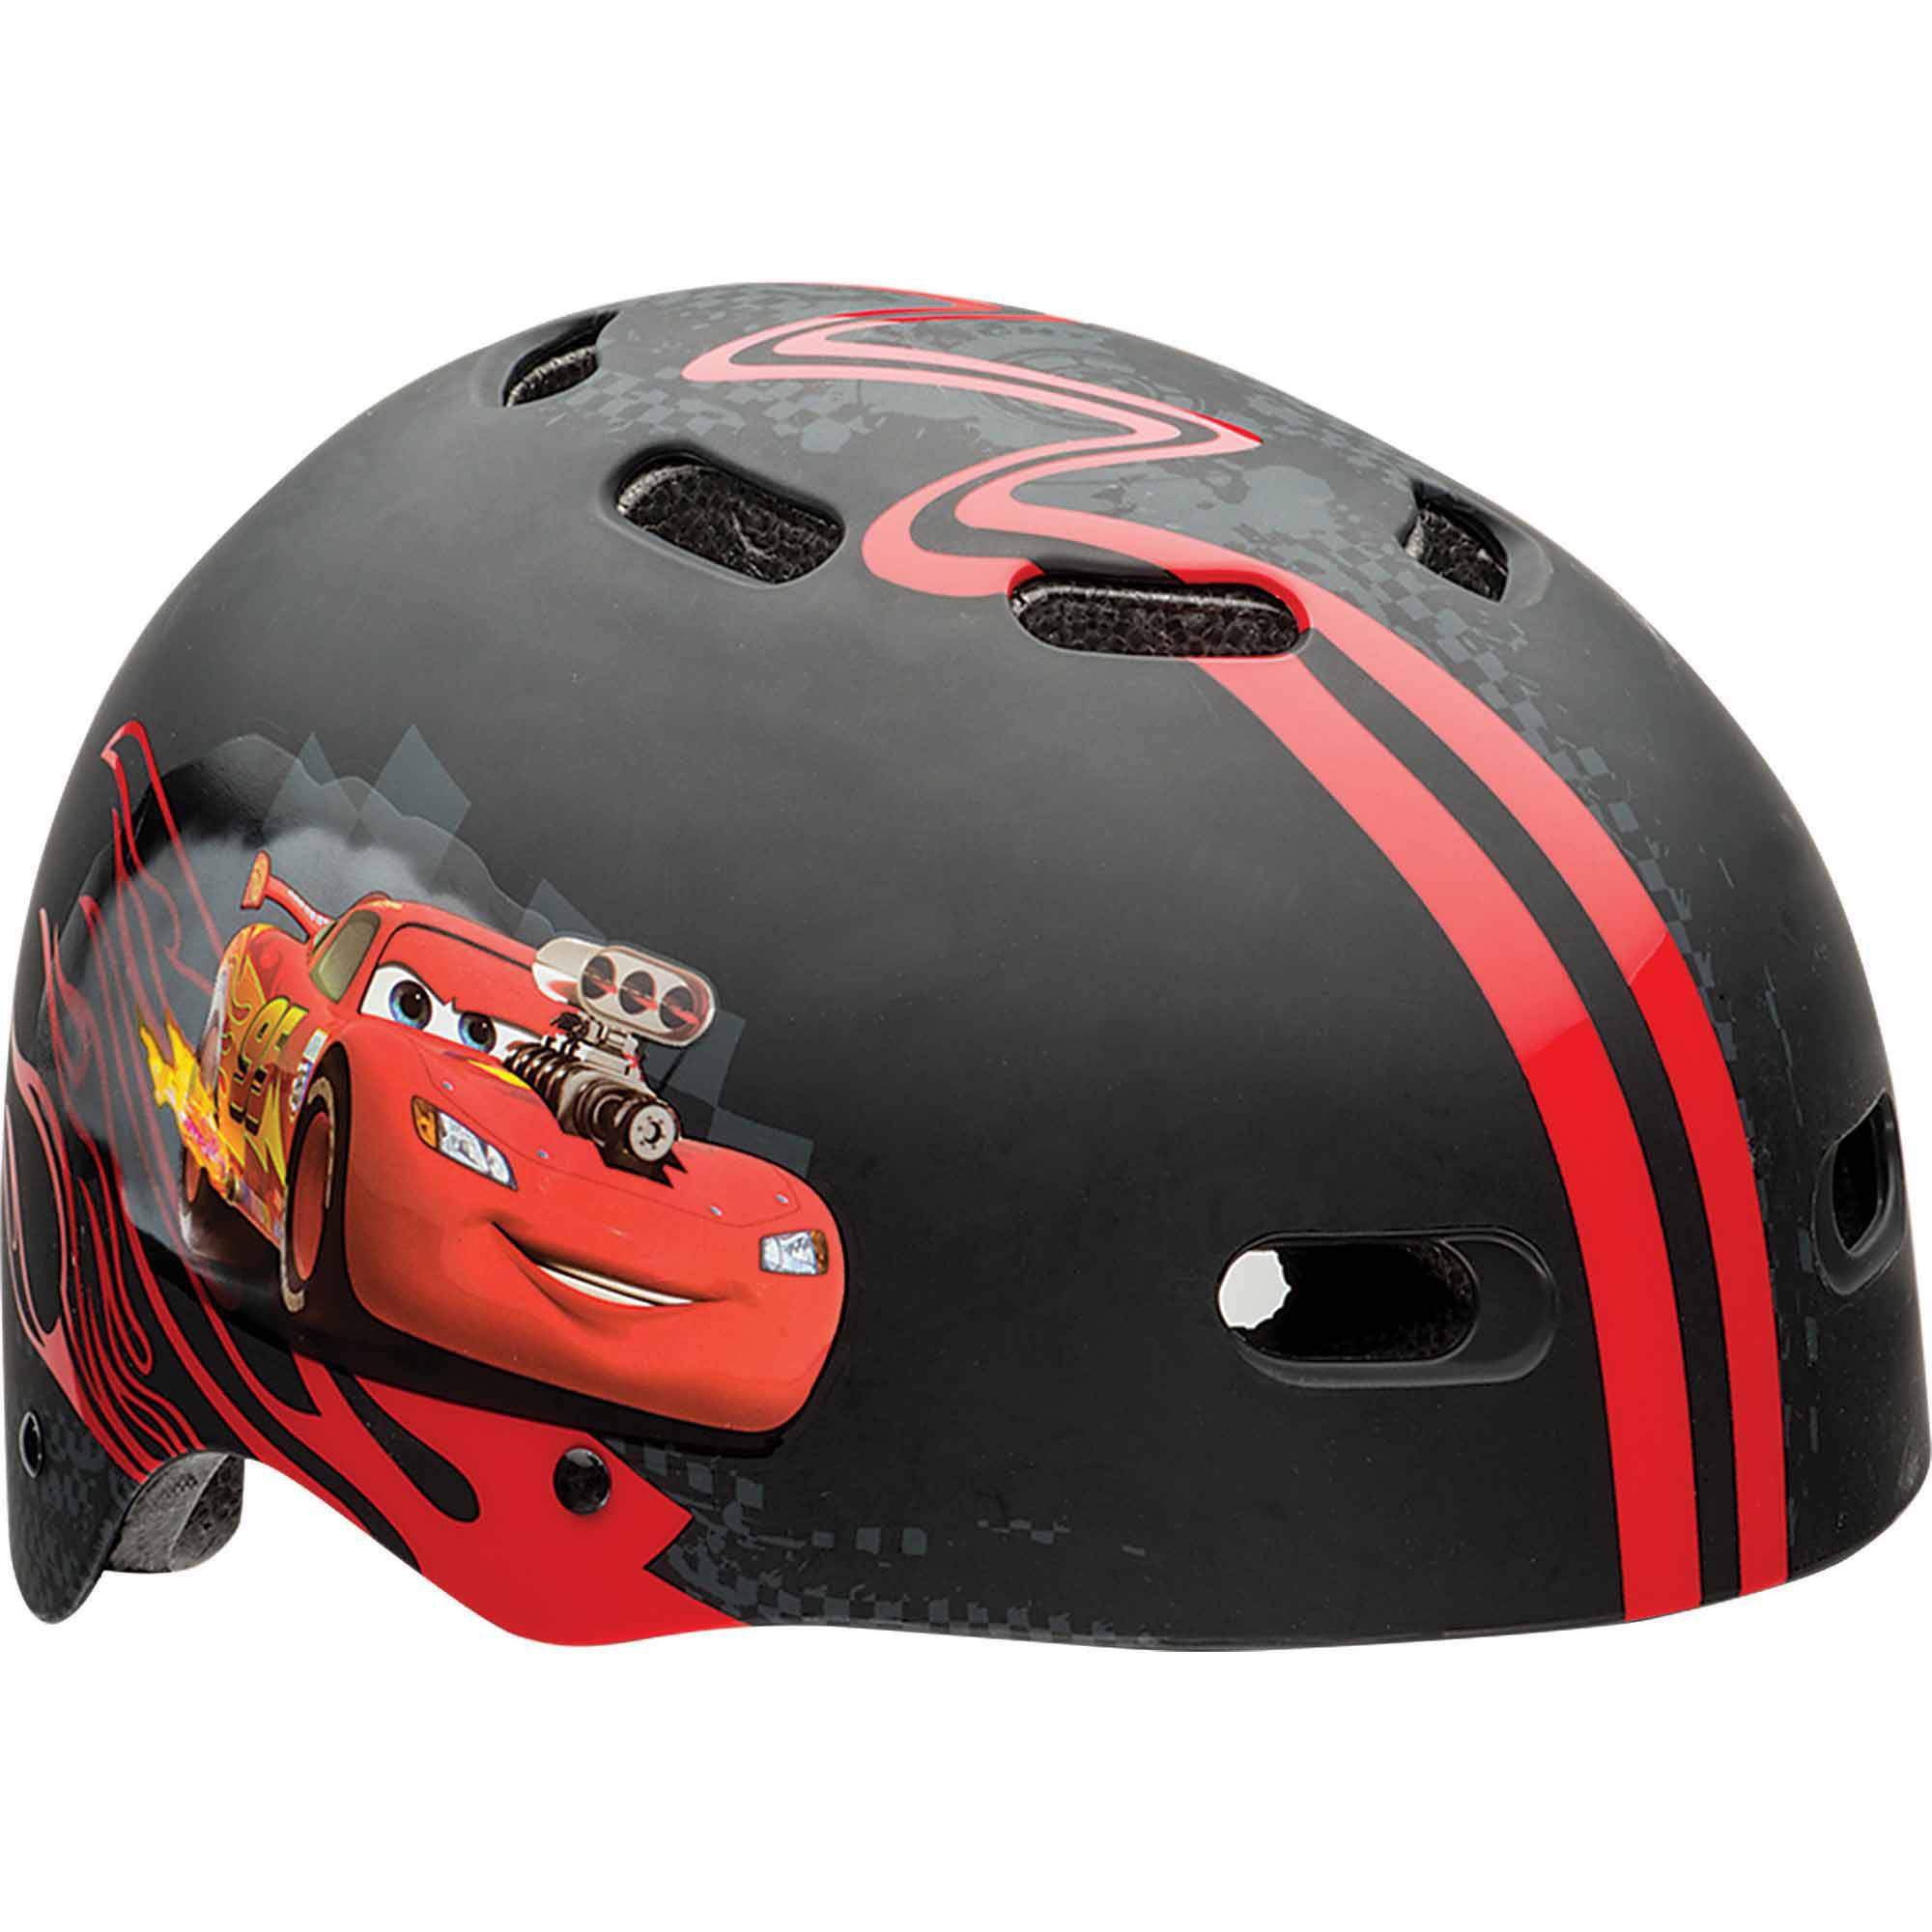 Disney Cars Child Multisport Helmet, Red